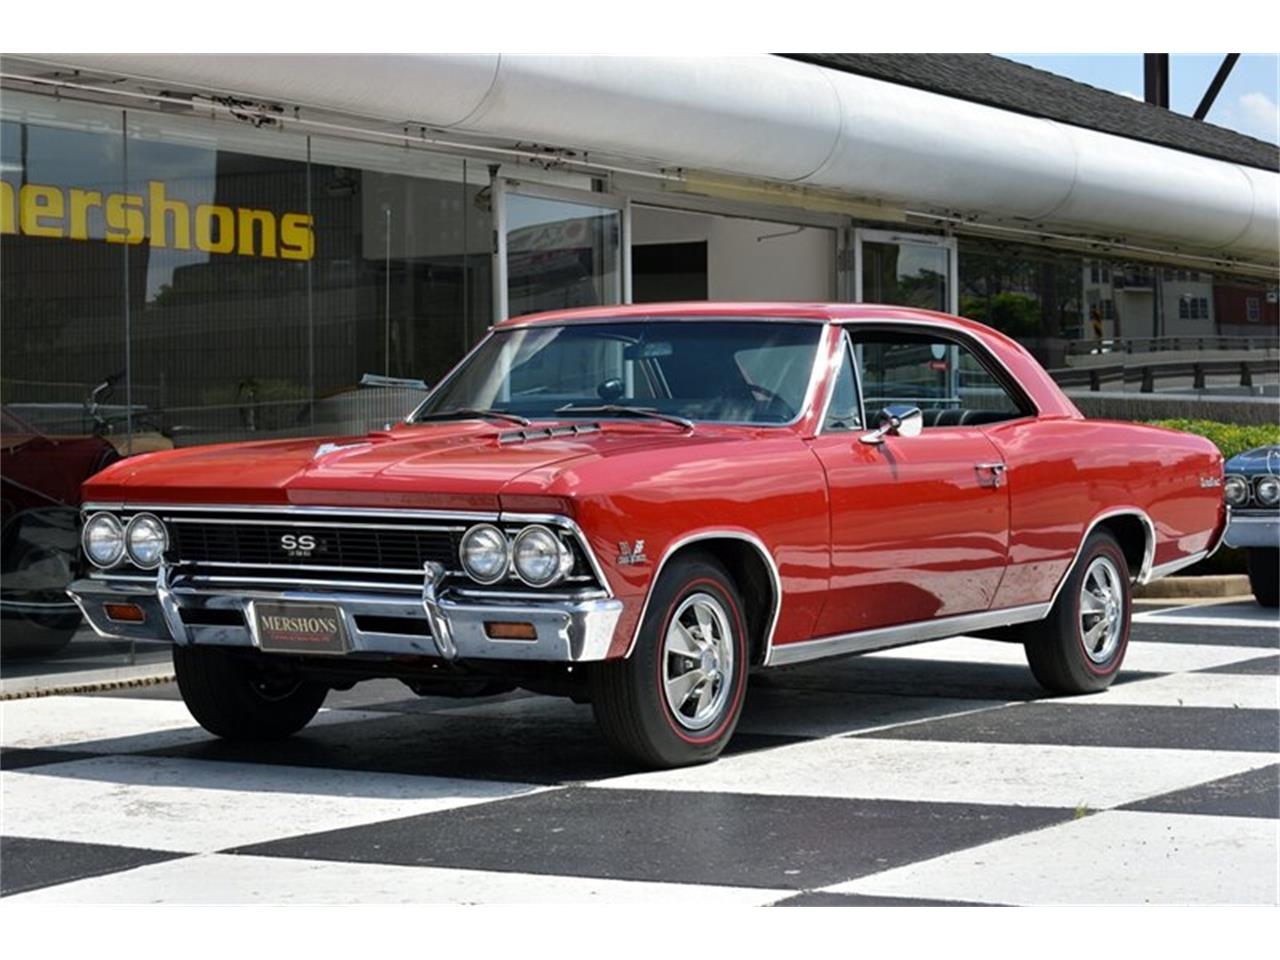 For Sale: 1966 Chevrolet Chevelle SS in Springfield, Ohio